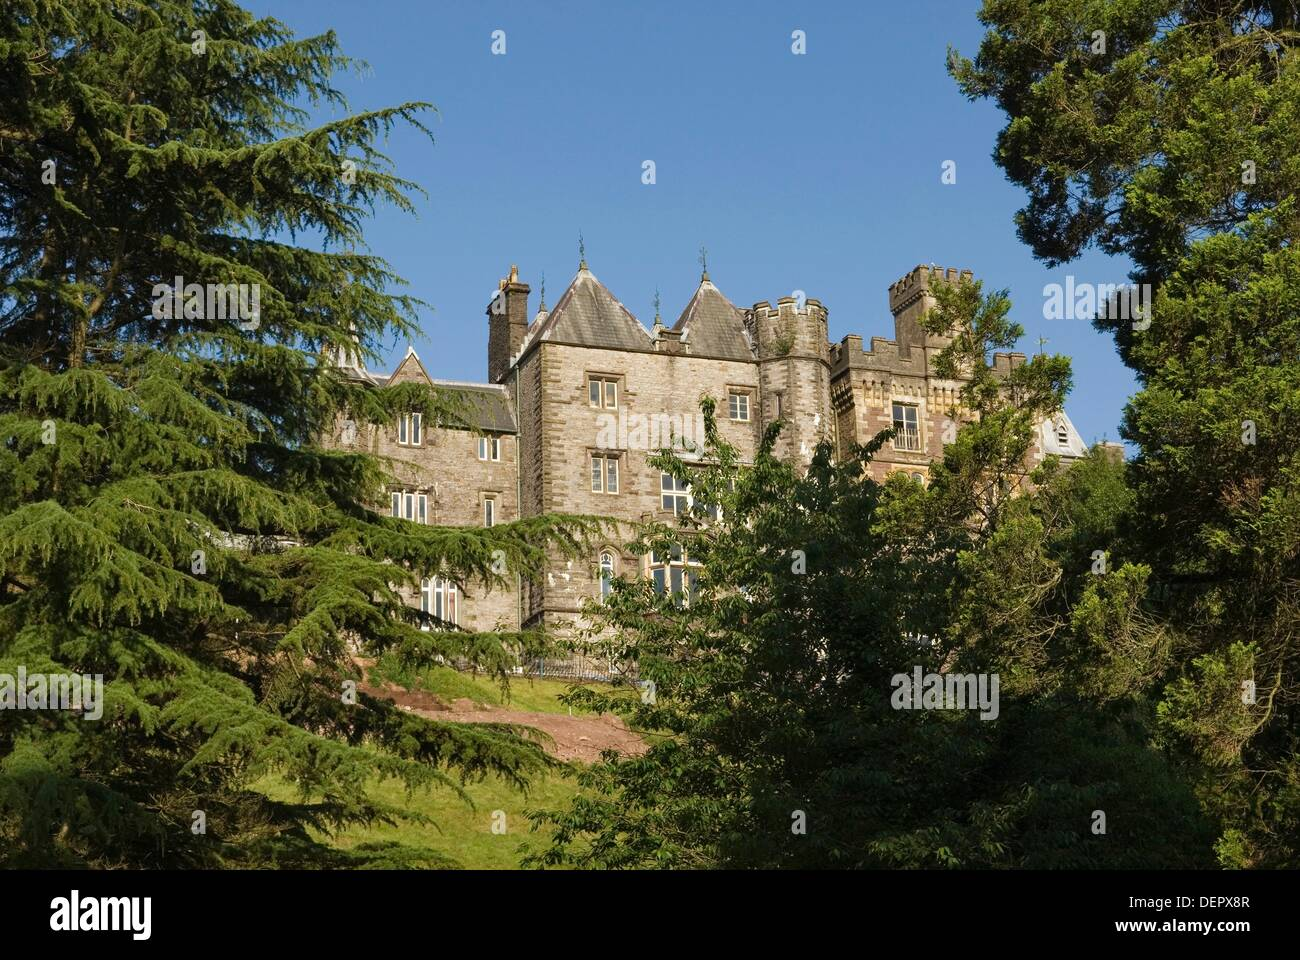 Craig-y-Nos Castle,Wales,United Kingdom,Great Britain,Europe - Stock Image